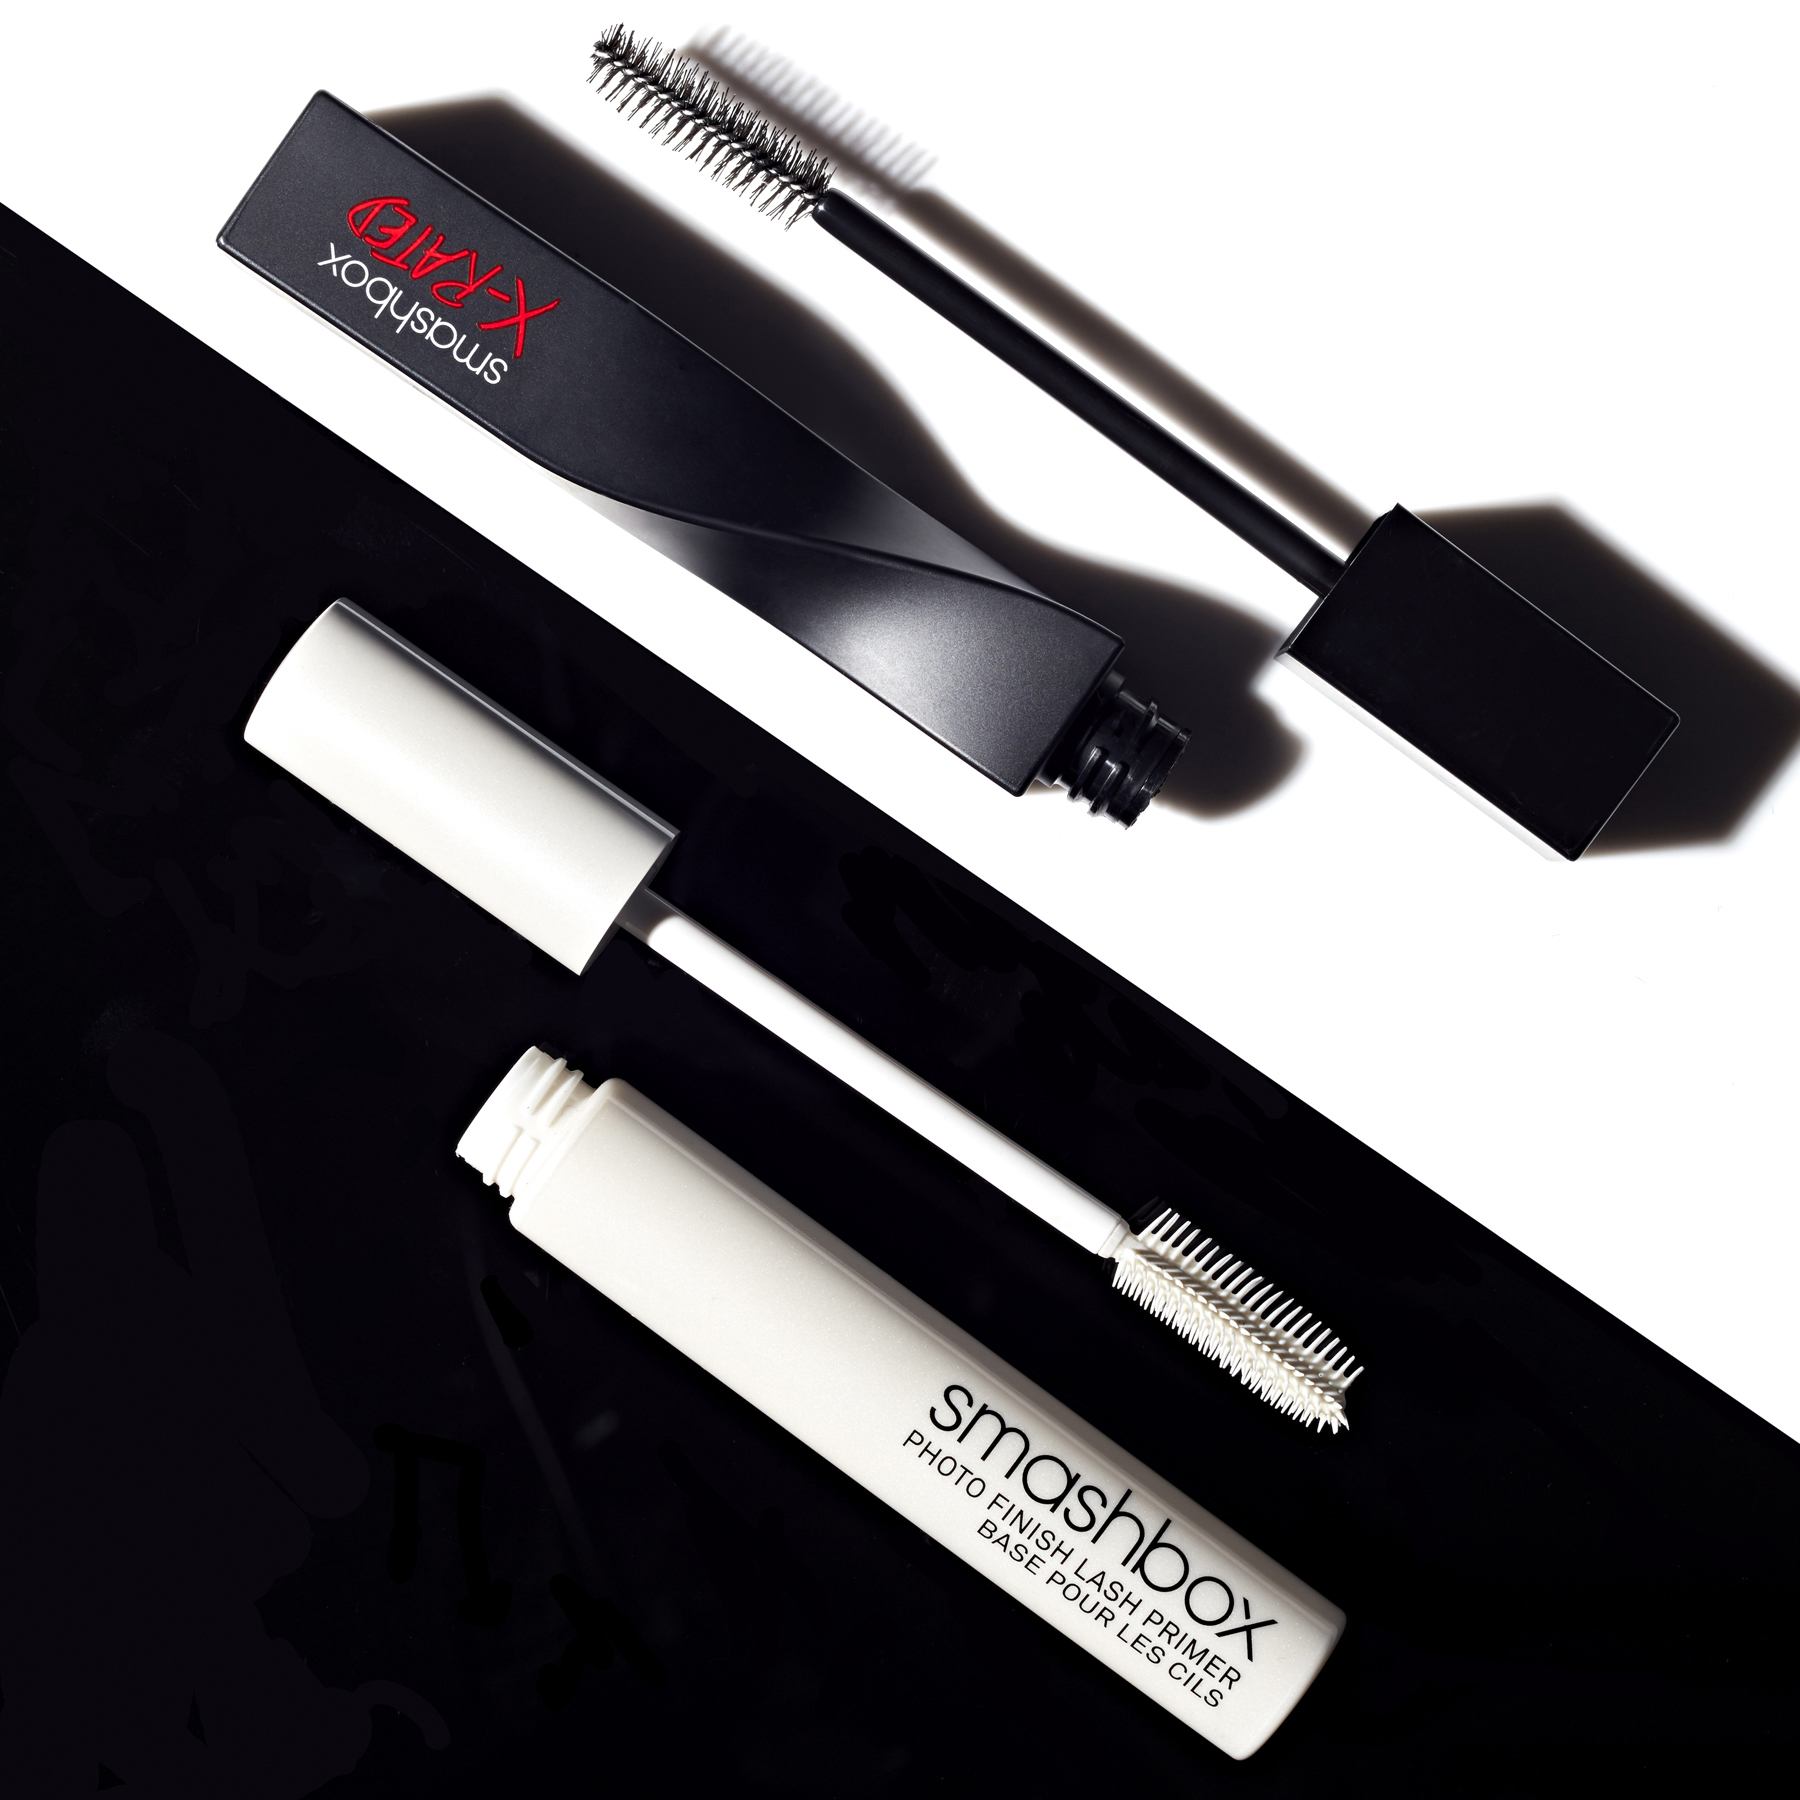 Aurelie Graillot_SMASHBOX_Cosmetics_20.jpg